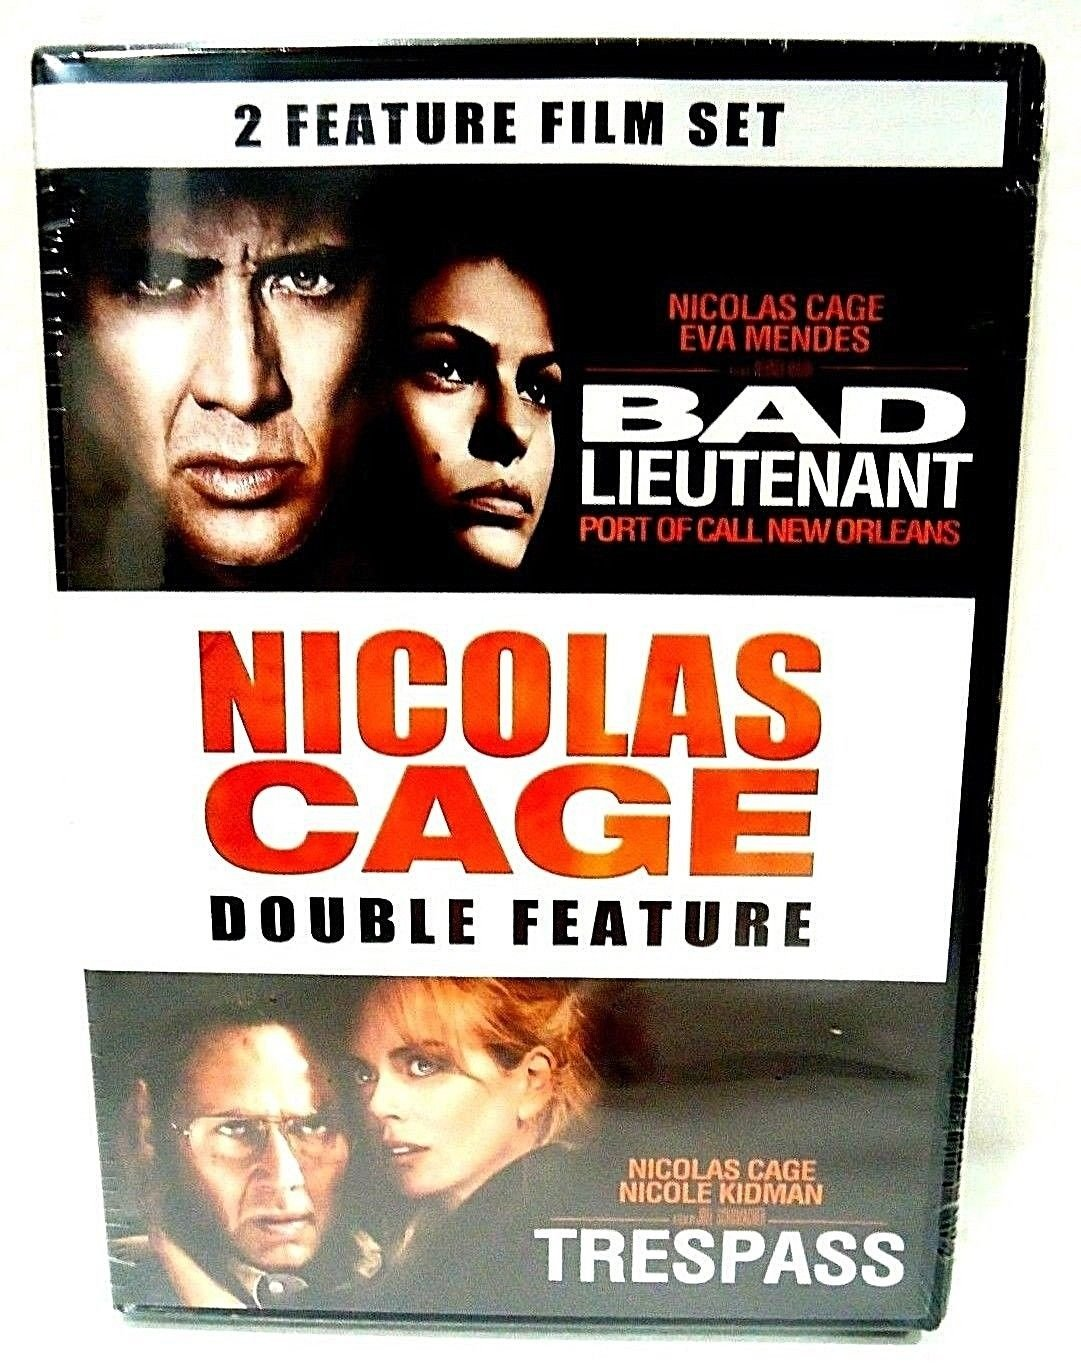 NICOLAS CAGE - DOUBLE FEATURE - DVD - TRESPASS - BAD LIEUTENANT - NEW - 2 MOVIES